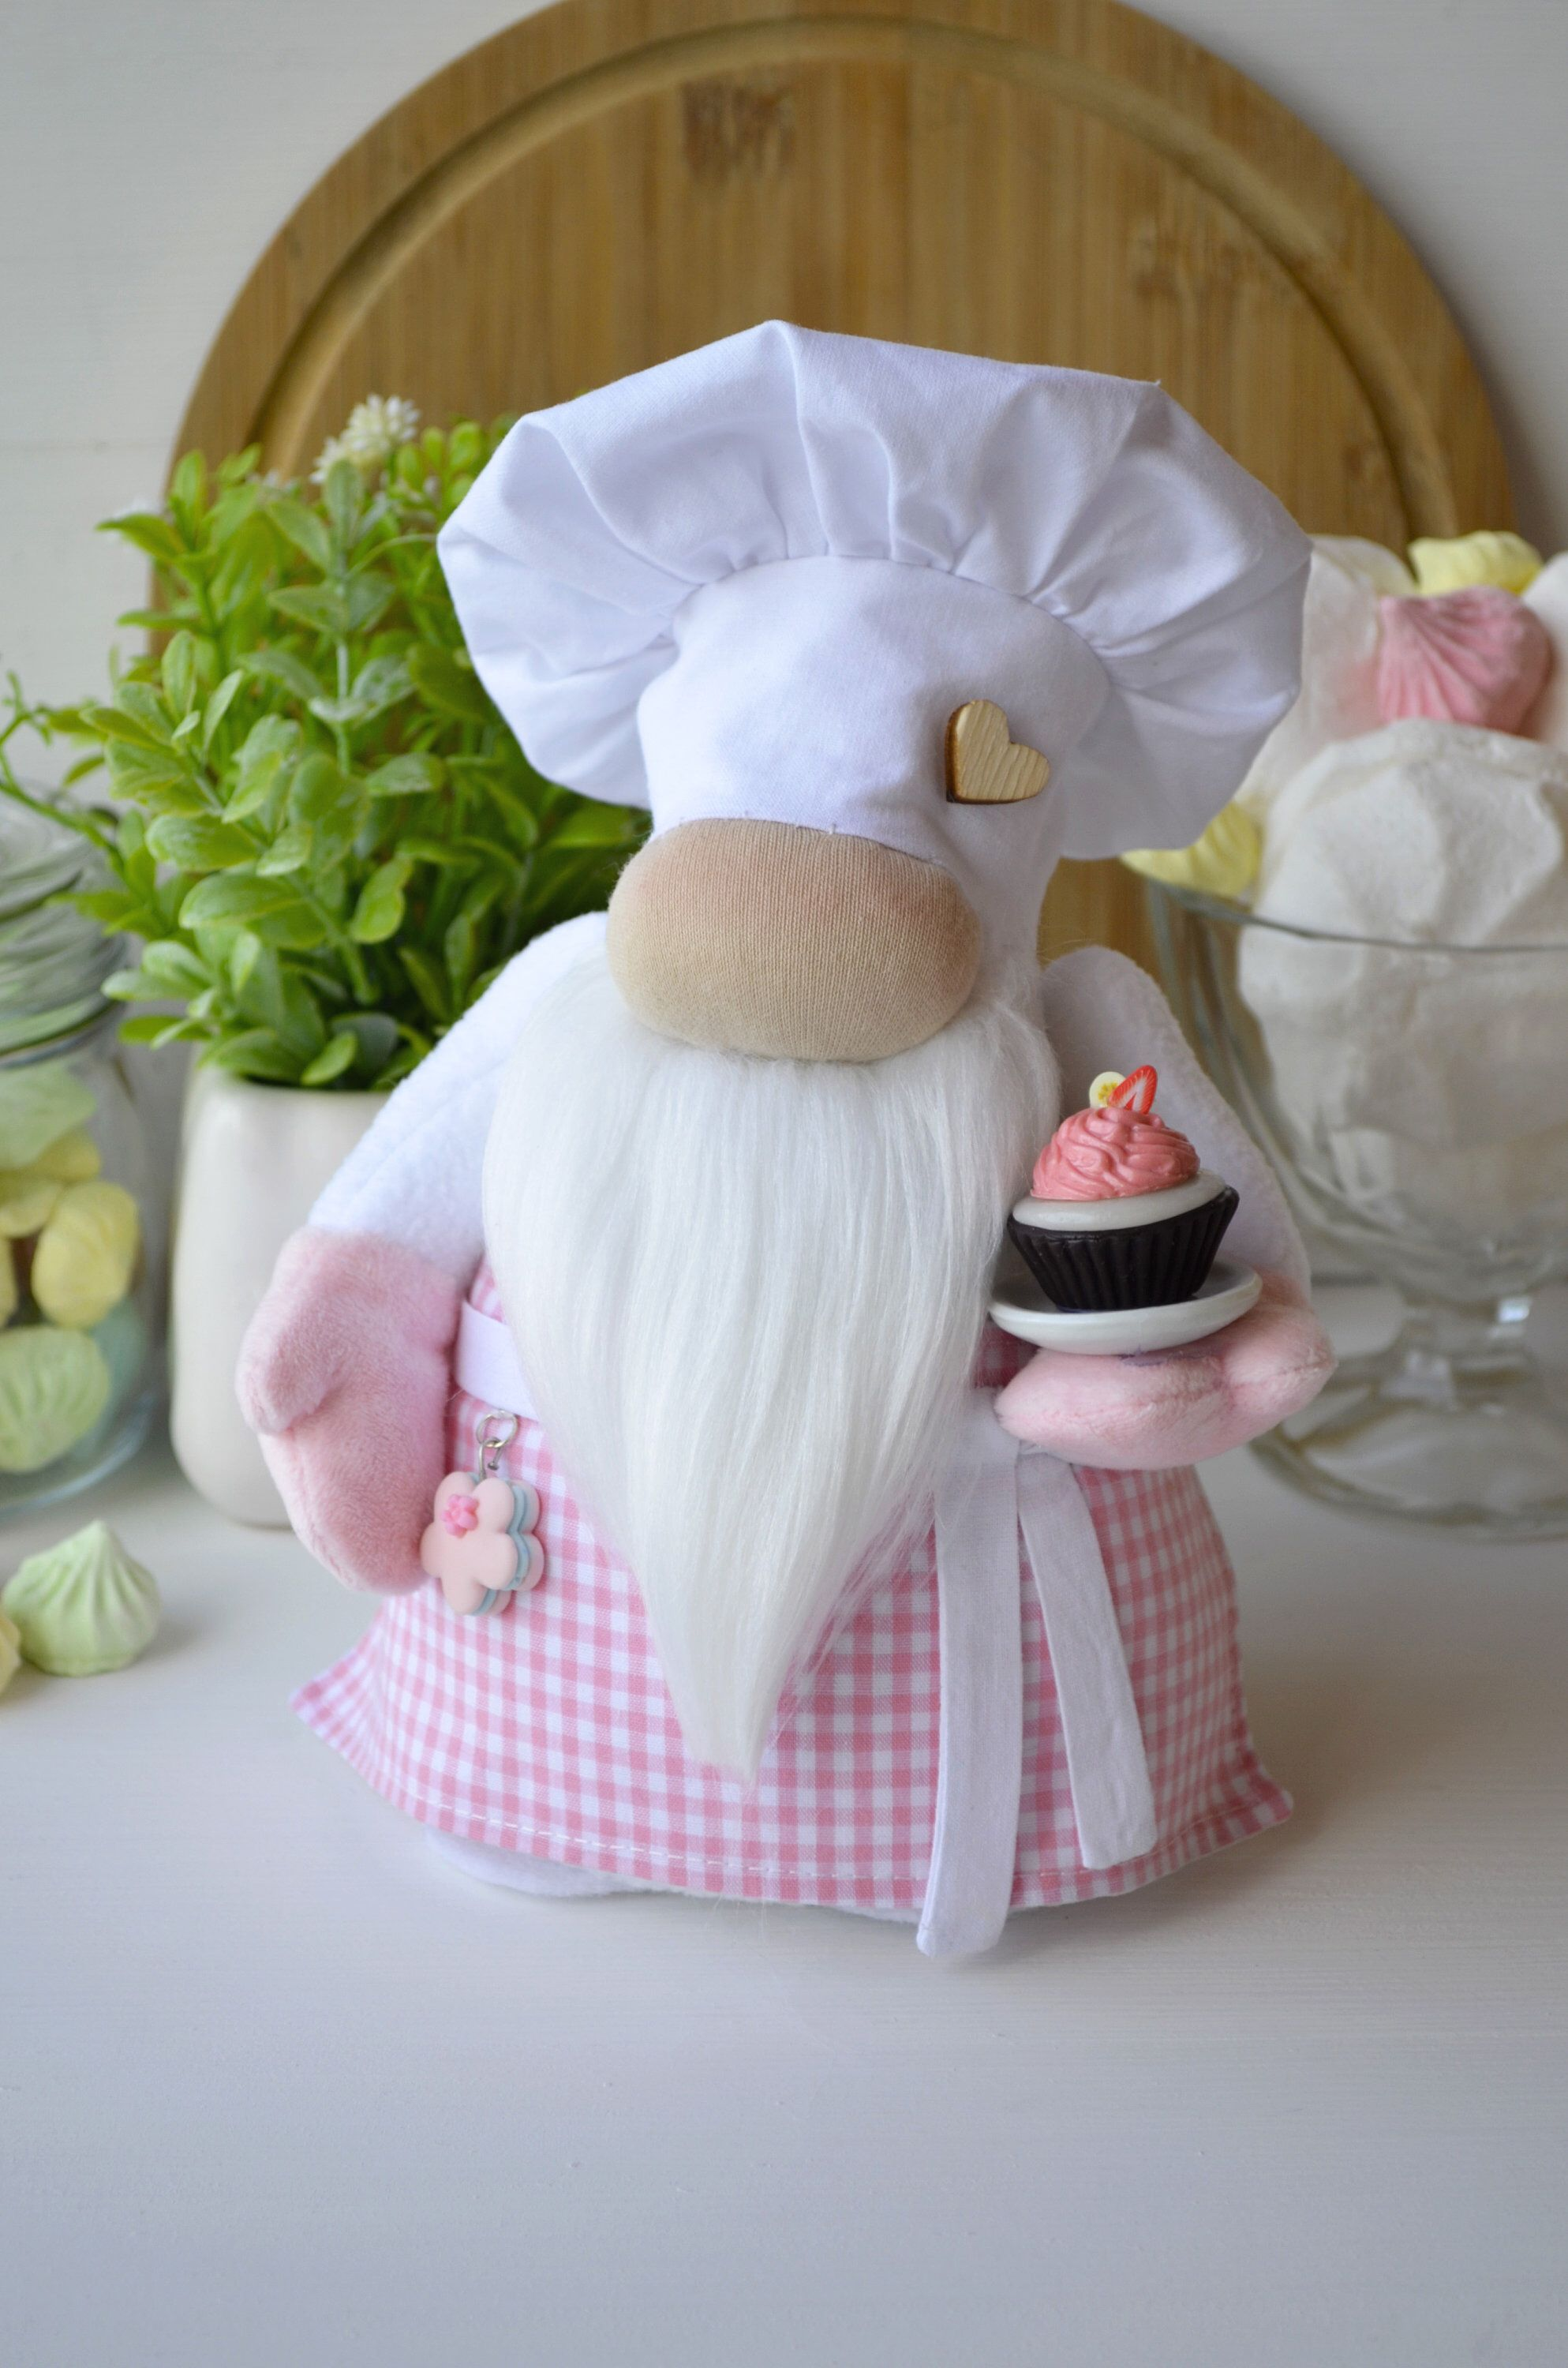 Gifts For Chef Christmas 2021 Kitchen Gnome Confectioner Chef Gnome Mother S Day Gift Etsy In 2021 Christmas Gift For Dad Gnomes Crafts Trending Christmas Gifts